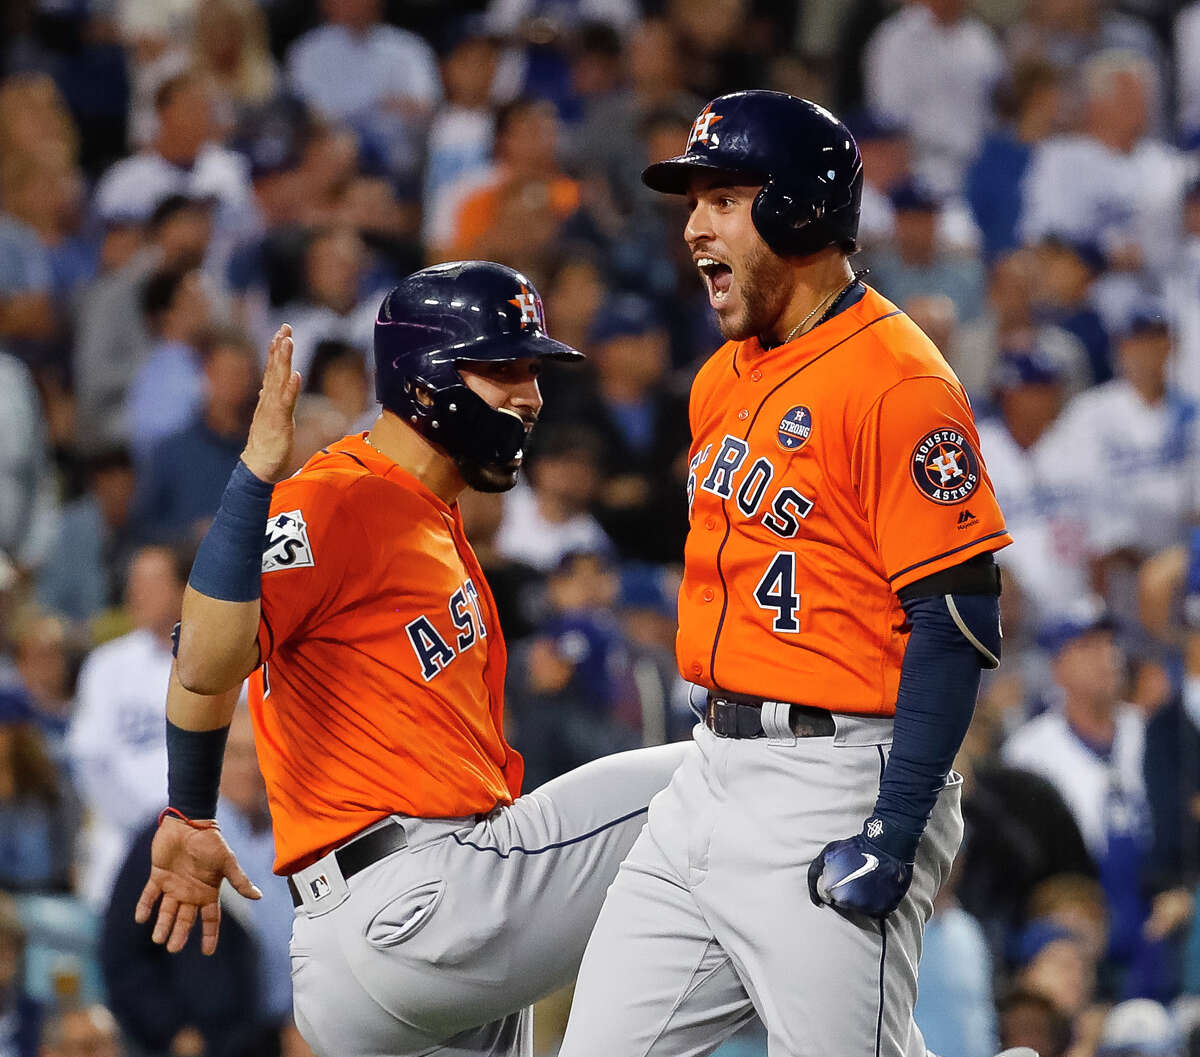 Houston Astros center fielder George Springer (4) and left fielder Marwin Gonzalez (9) celebrate Springer's two-run home run that drove in Gonzalez during the second inning of Game 7 of the World Series at Dodger Stadium on Wednesday, Nov. 1, 2017, in Los Angeles. ( Karen Warren / Houston Chronicle )